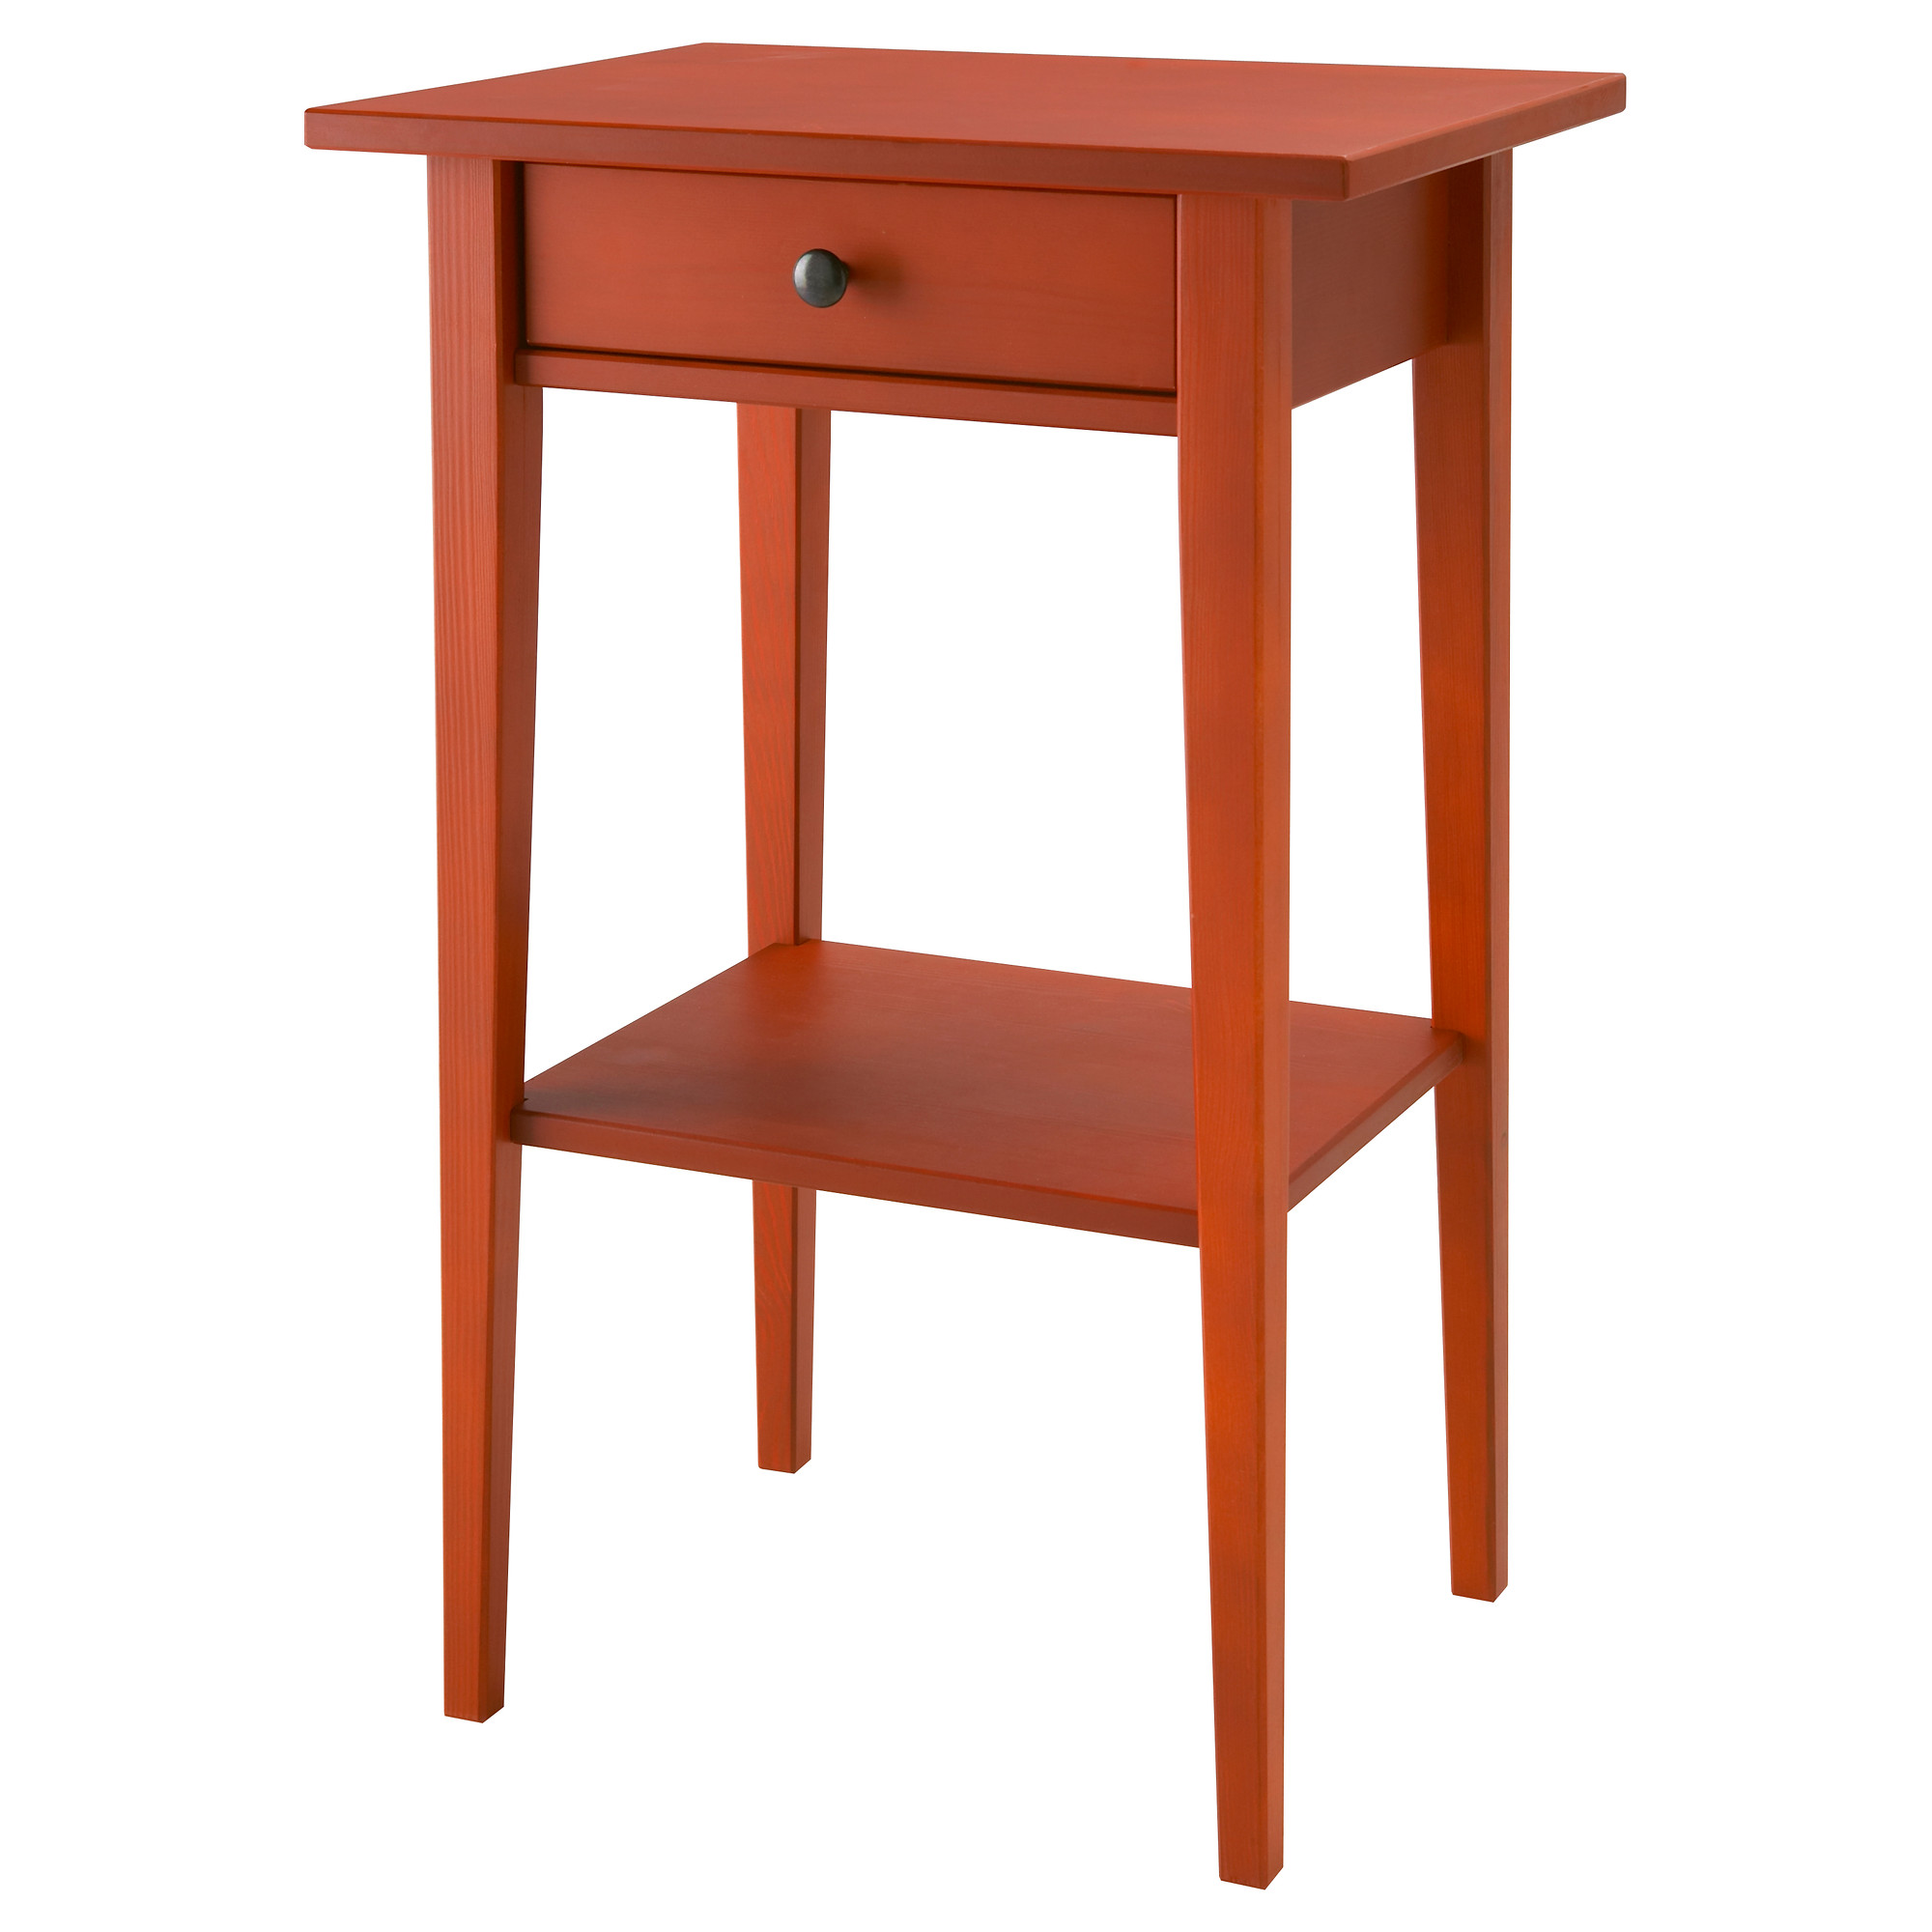 small bedside table height with drawer - Height Of Bedside Table